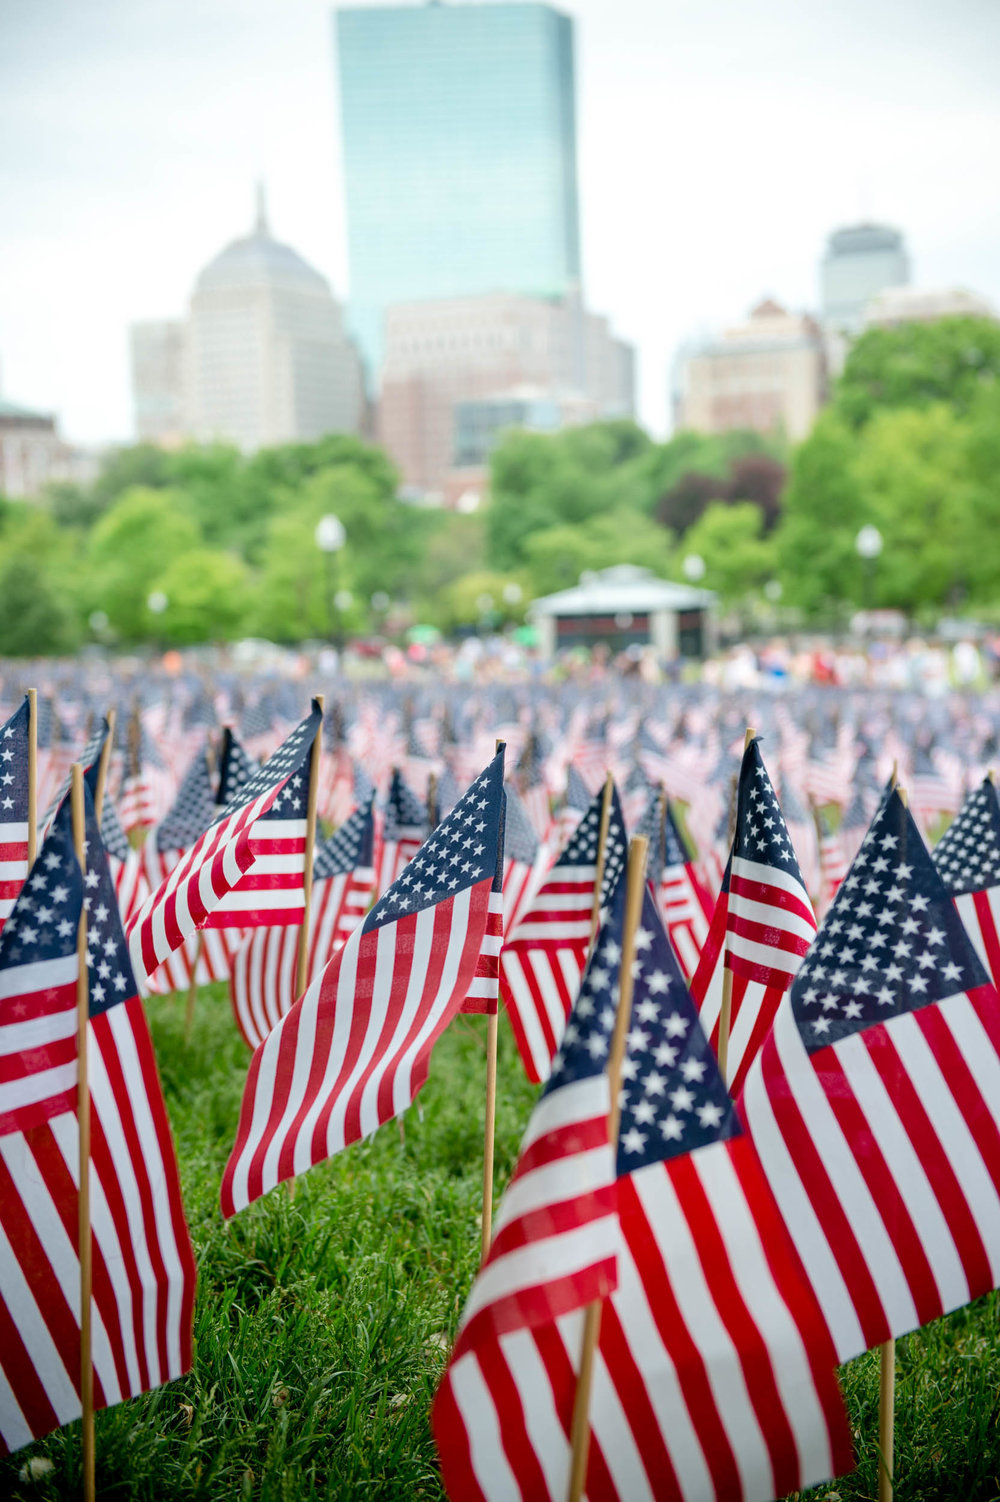 Maura Wayman Photography, Photography, Corporate Photography, stock, stock images, Massachusetts, Boston, Metro West, Wellesley, flags, field, field of flags, cityscape, tall building, Boston Common, Memorial day,